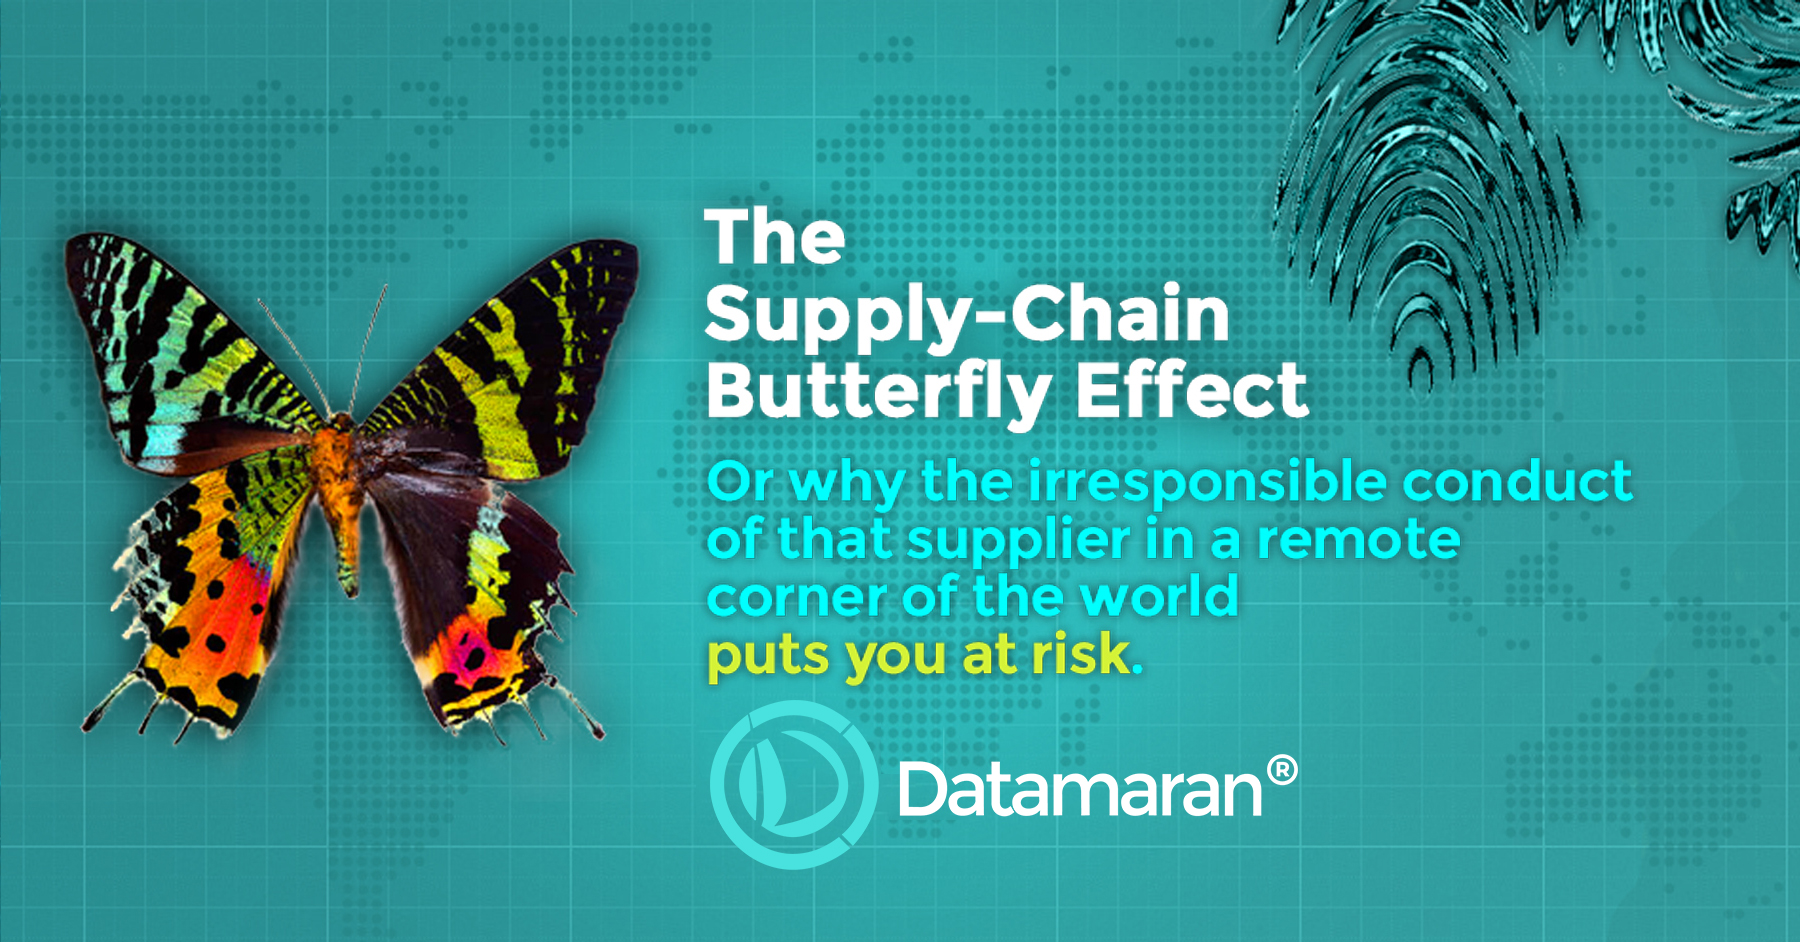 The Supply-Chain Butterfly Effect